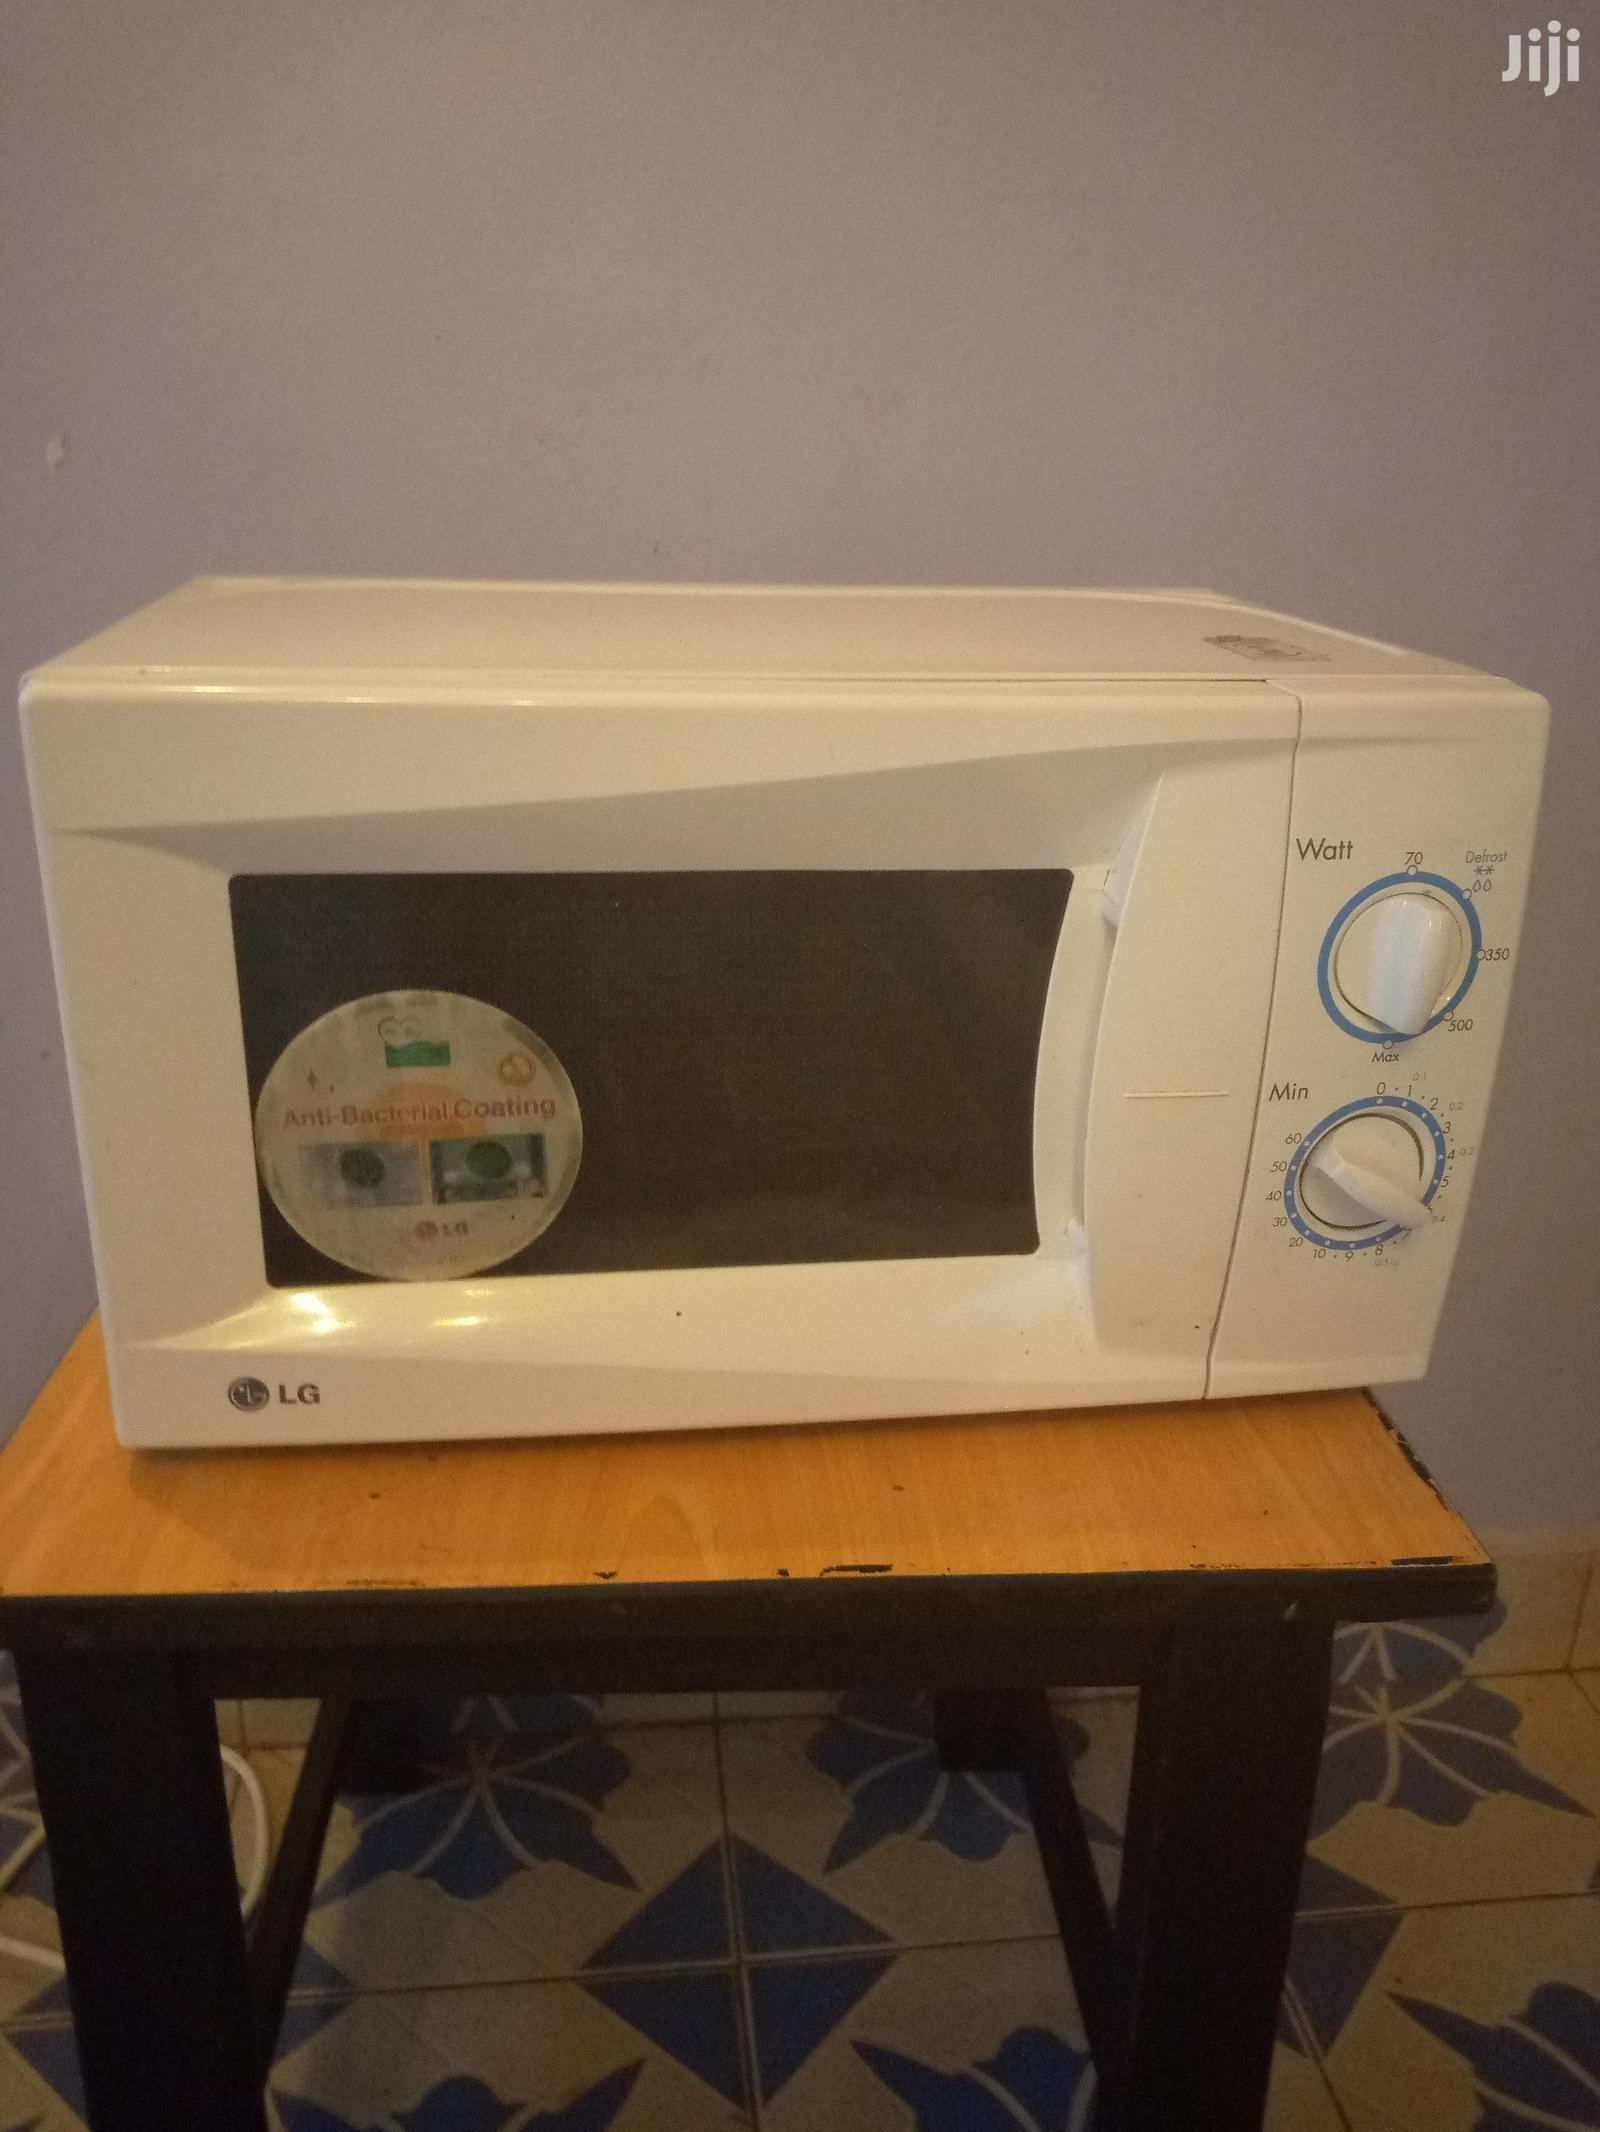 lg microwave white in colour